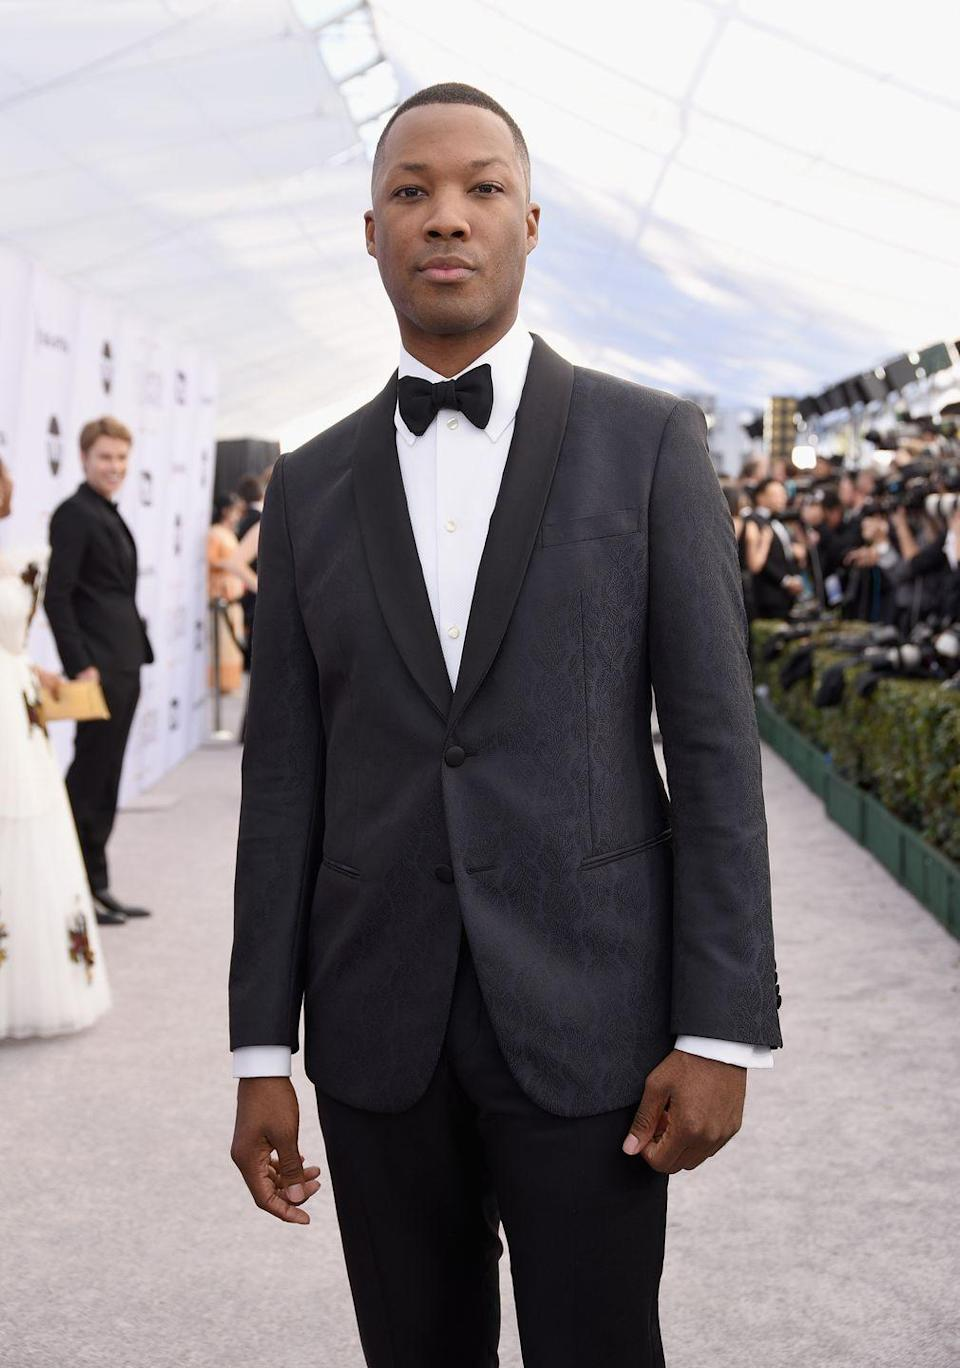 <p>Hawkins has gone from action shows to hip-hop biopics, and is now returning to his love of theater. Some of his notable titles include <em>Straight Outta Compton</em>, <em>24: Legacy</em>, and <em>The Walking Dead, </em>as well as the Broadway play <em>Six Degrees of Separation. </em></p><p><strong>Follow him on Instagram: </strong>@coreyhawkins</p>